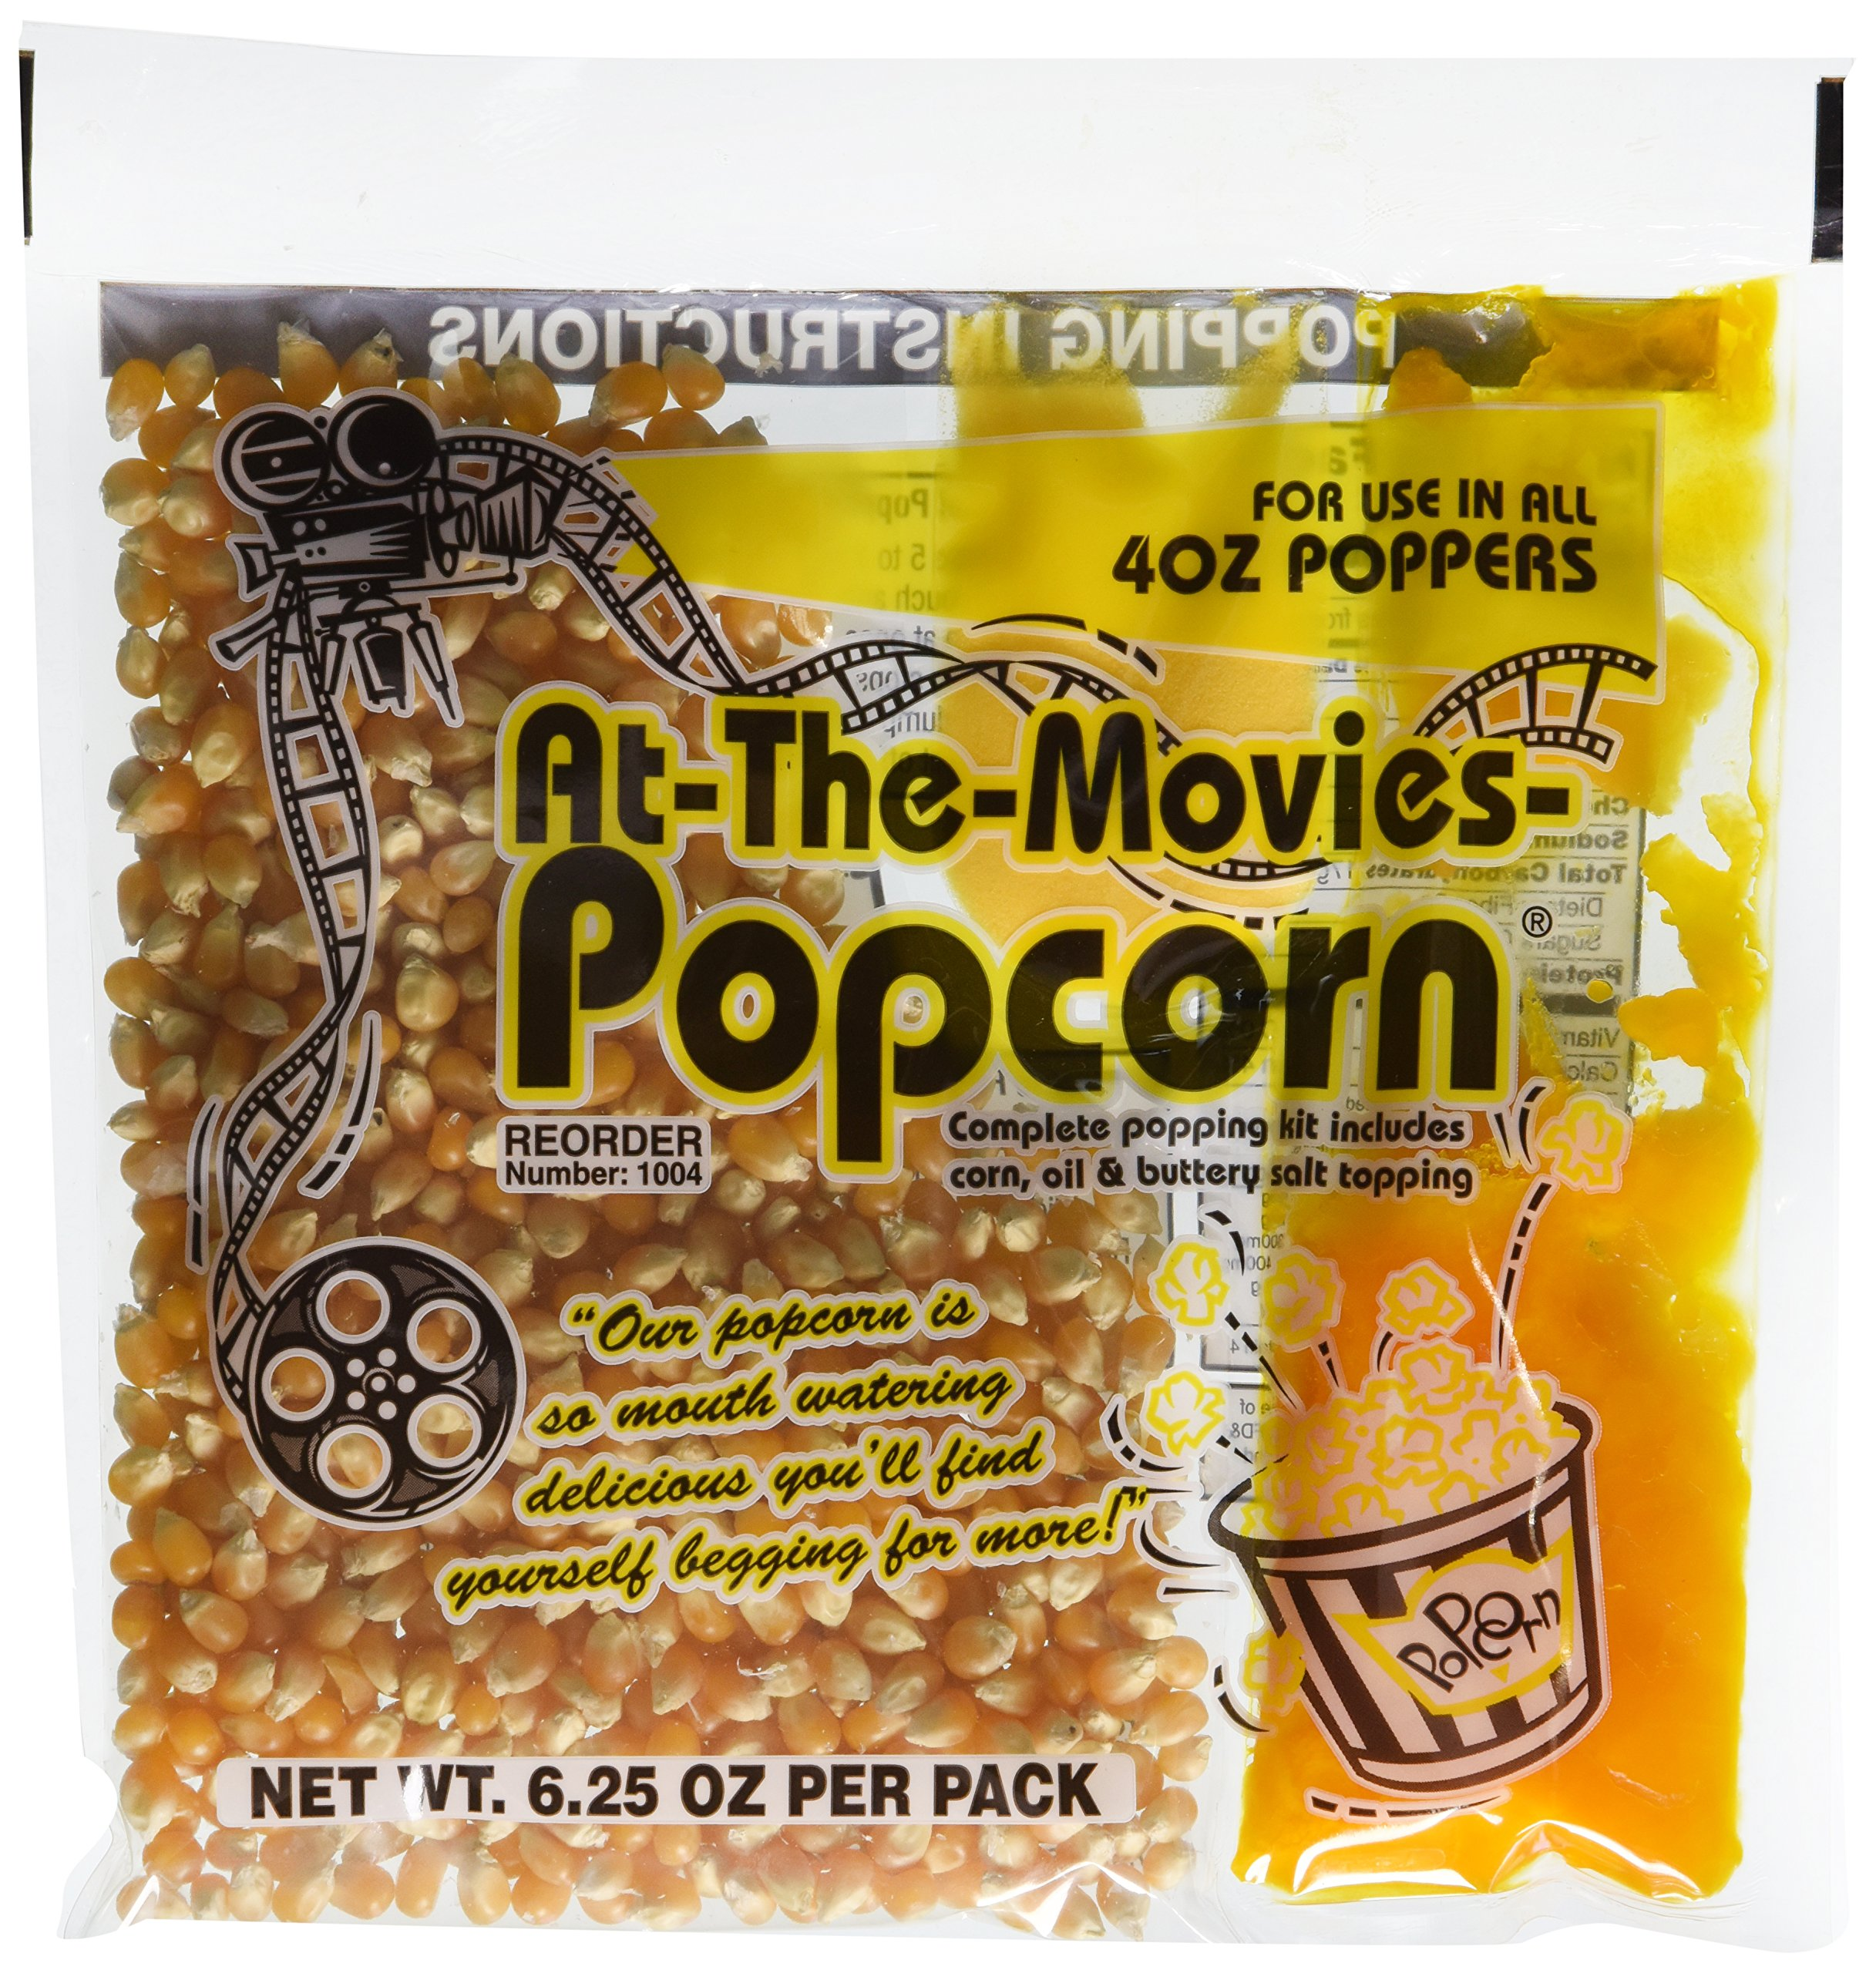 At-The-Movies Popcorn & Coconut Oil Portion Packs-Case of 24 (4oz Kettle) by At-The-Movies-Popcorn